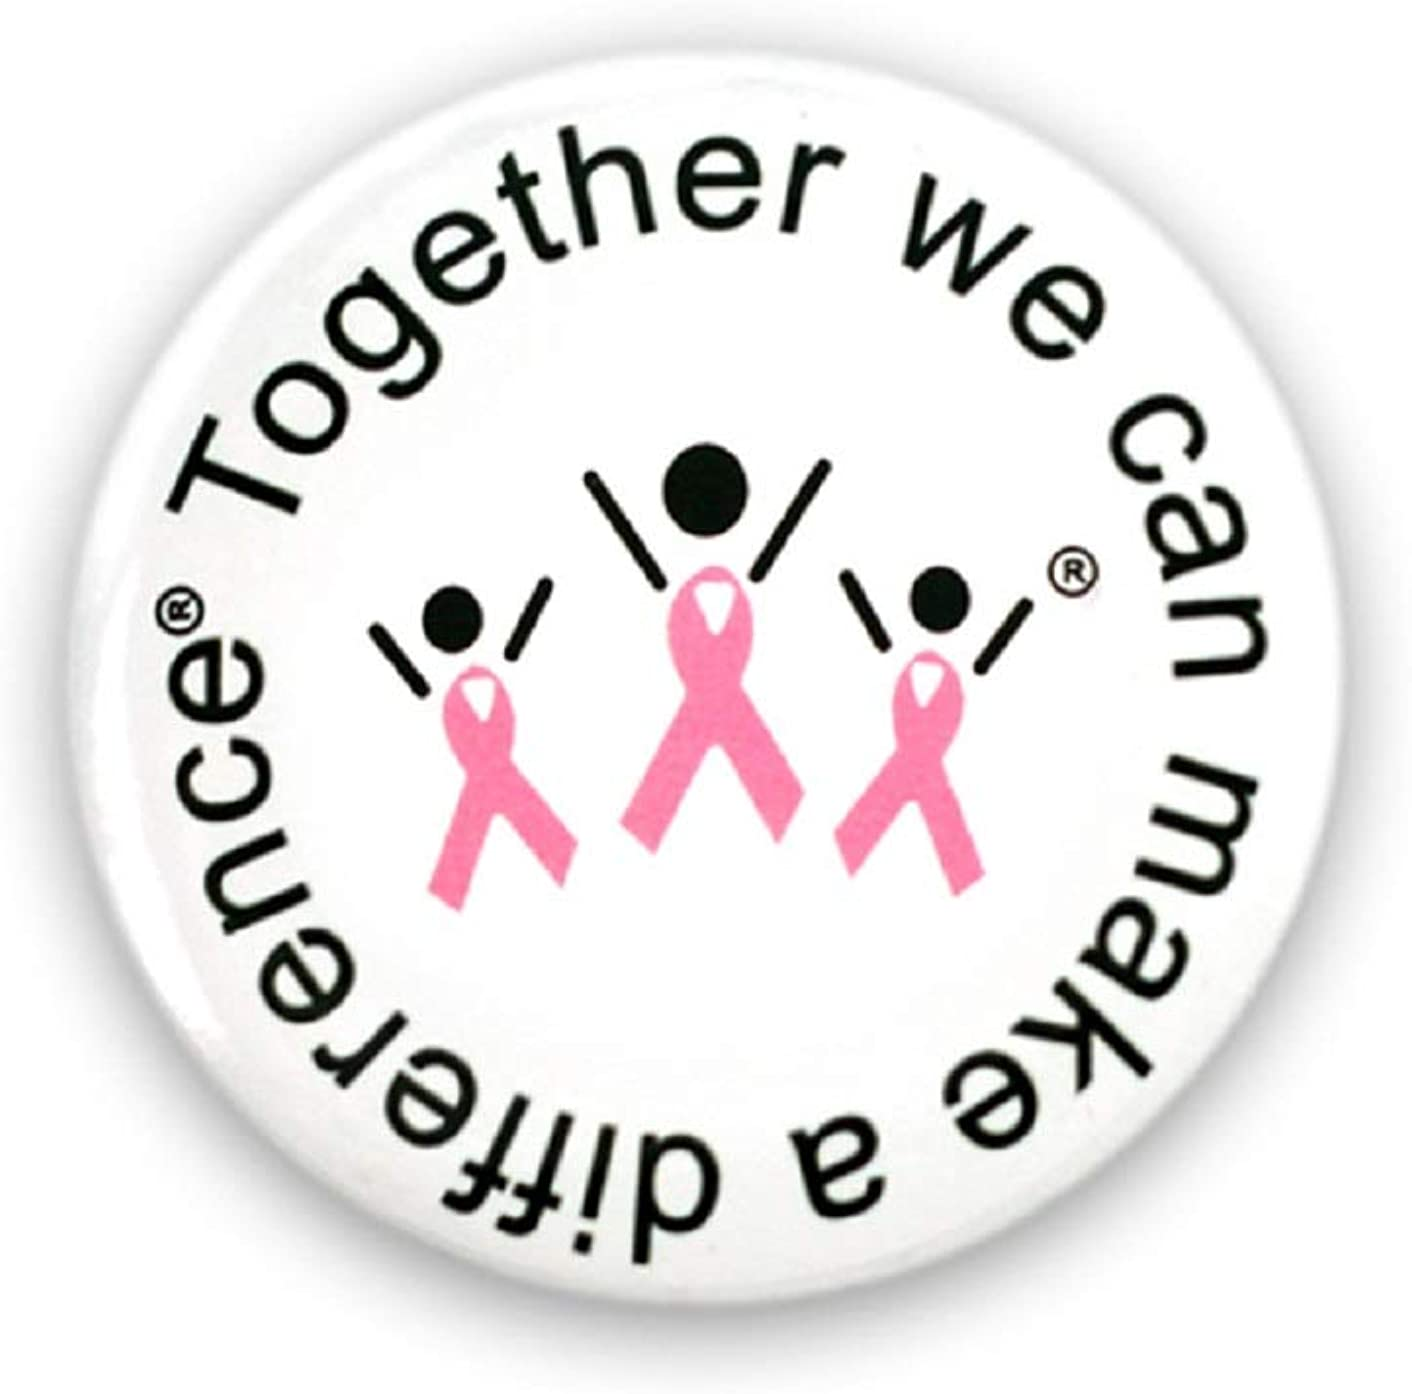 Fundraising For New popularity A Cause Breast Cancer Bu Awareness Pink Popular products Ribbon